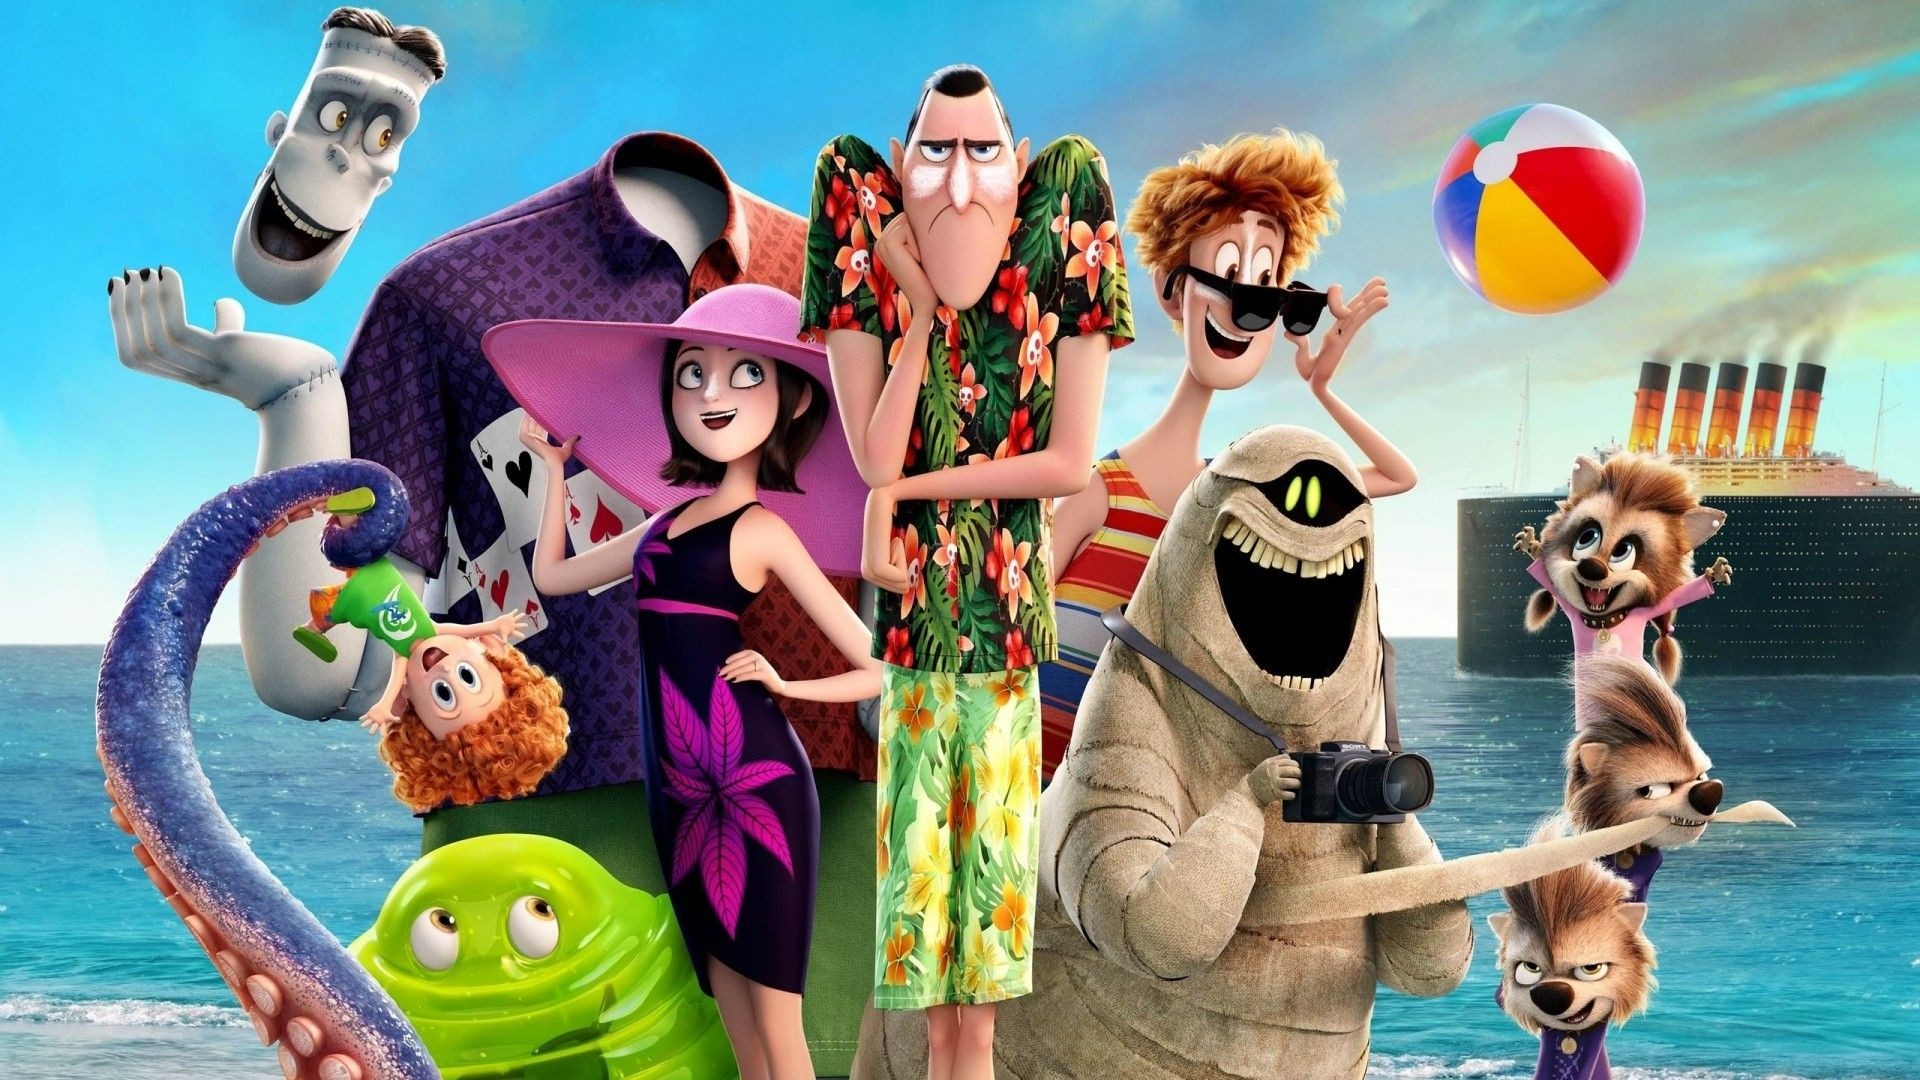 Hotel Transylvania 3 Hd Wallpapers Theme Nazirah Purwanto In 2019